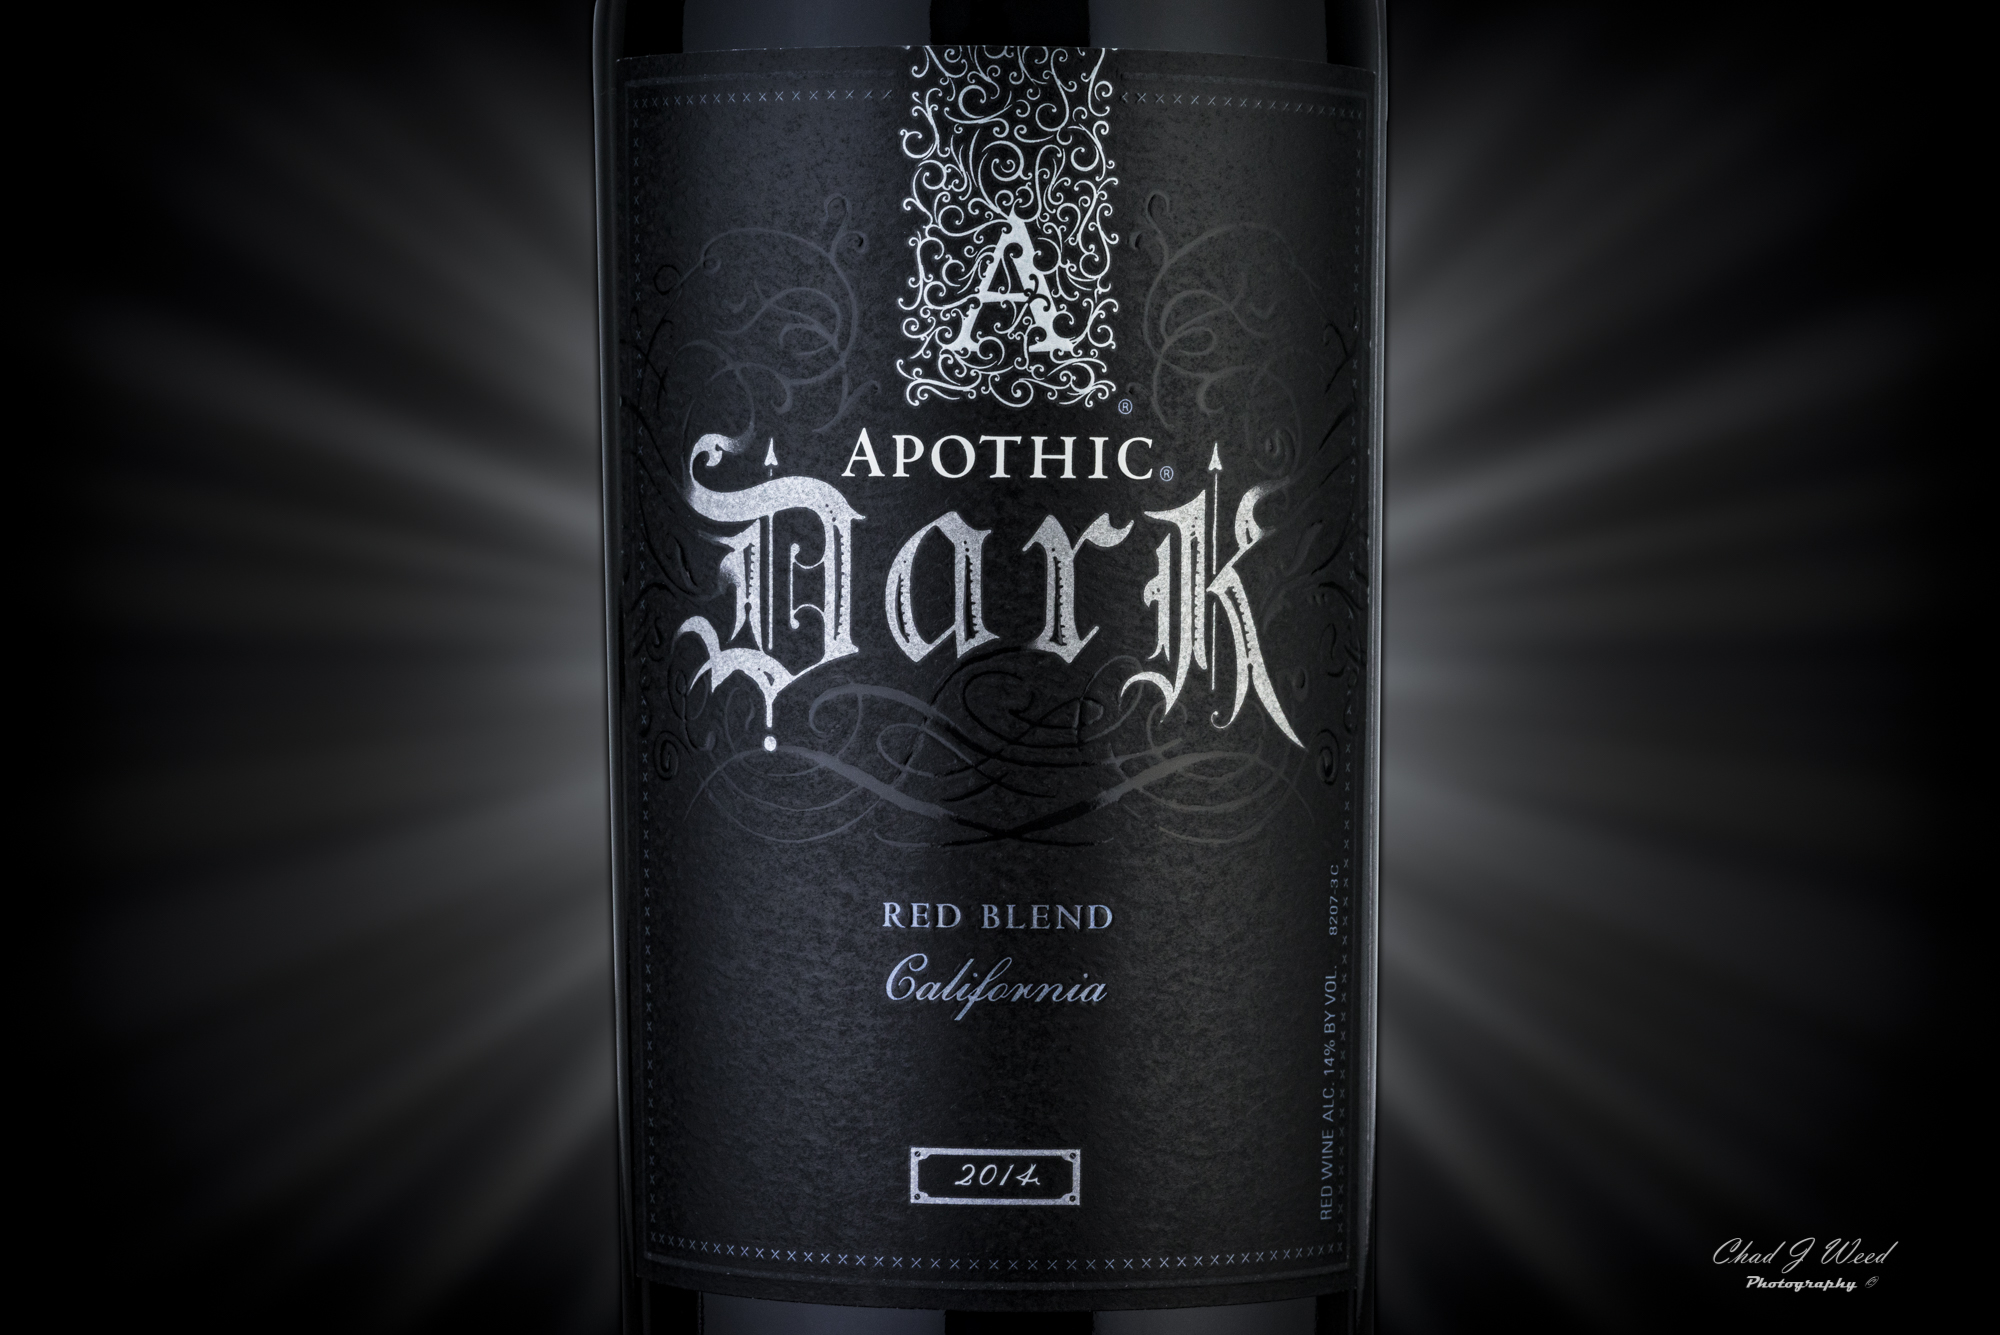 Apothic Dark Wine by Arizona Commercial Photographer Chad J Weed